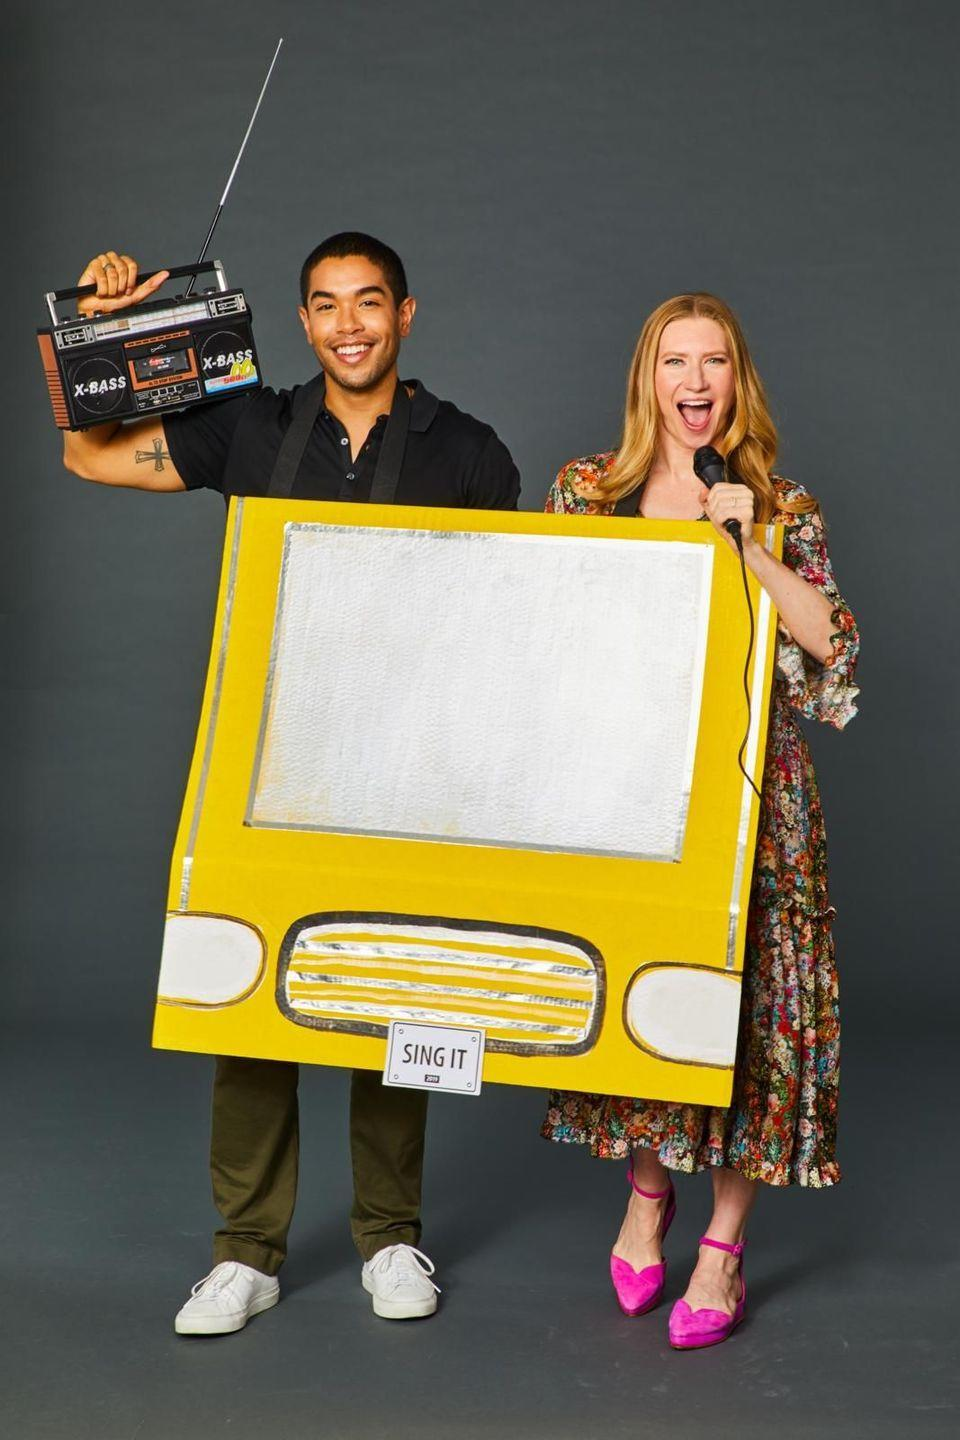 """<p>Use silver and black paint to transform yellow presentation board into a taxi. Then, attach velcro strips to make straps that can go around your necks. Brainstorm a clever vanity plate — """"Sing it,"""" for example — and finish it off with a boom box and microphone.</p><p><a class=""""link rapid-noclick-resp"""" href=""""https://www.amazon.com/JENSEN-CD-490-Portable-Stereo-Player/dp/B00BCA40S0/?tag=syn-yahoo-20&ascsubtag=%5Bartid%7C10055.g.21969310%5Bsrc%7Cyahoo-us"""" rel=""""nofollow noopener"""" target=""""_blank"""" data-ylk=""""slk:SHOP BOOM BOXES""""><strong>SHOP BOOM BOXES</strong></a></p>"""